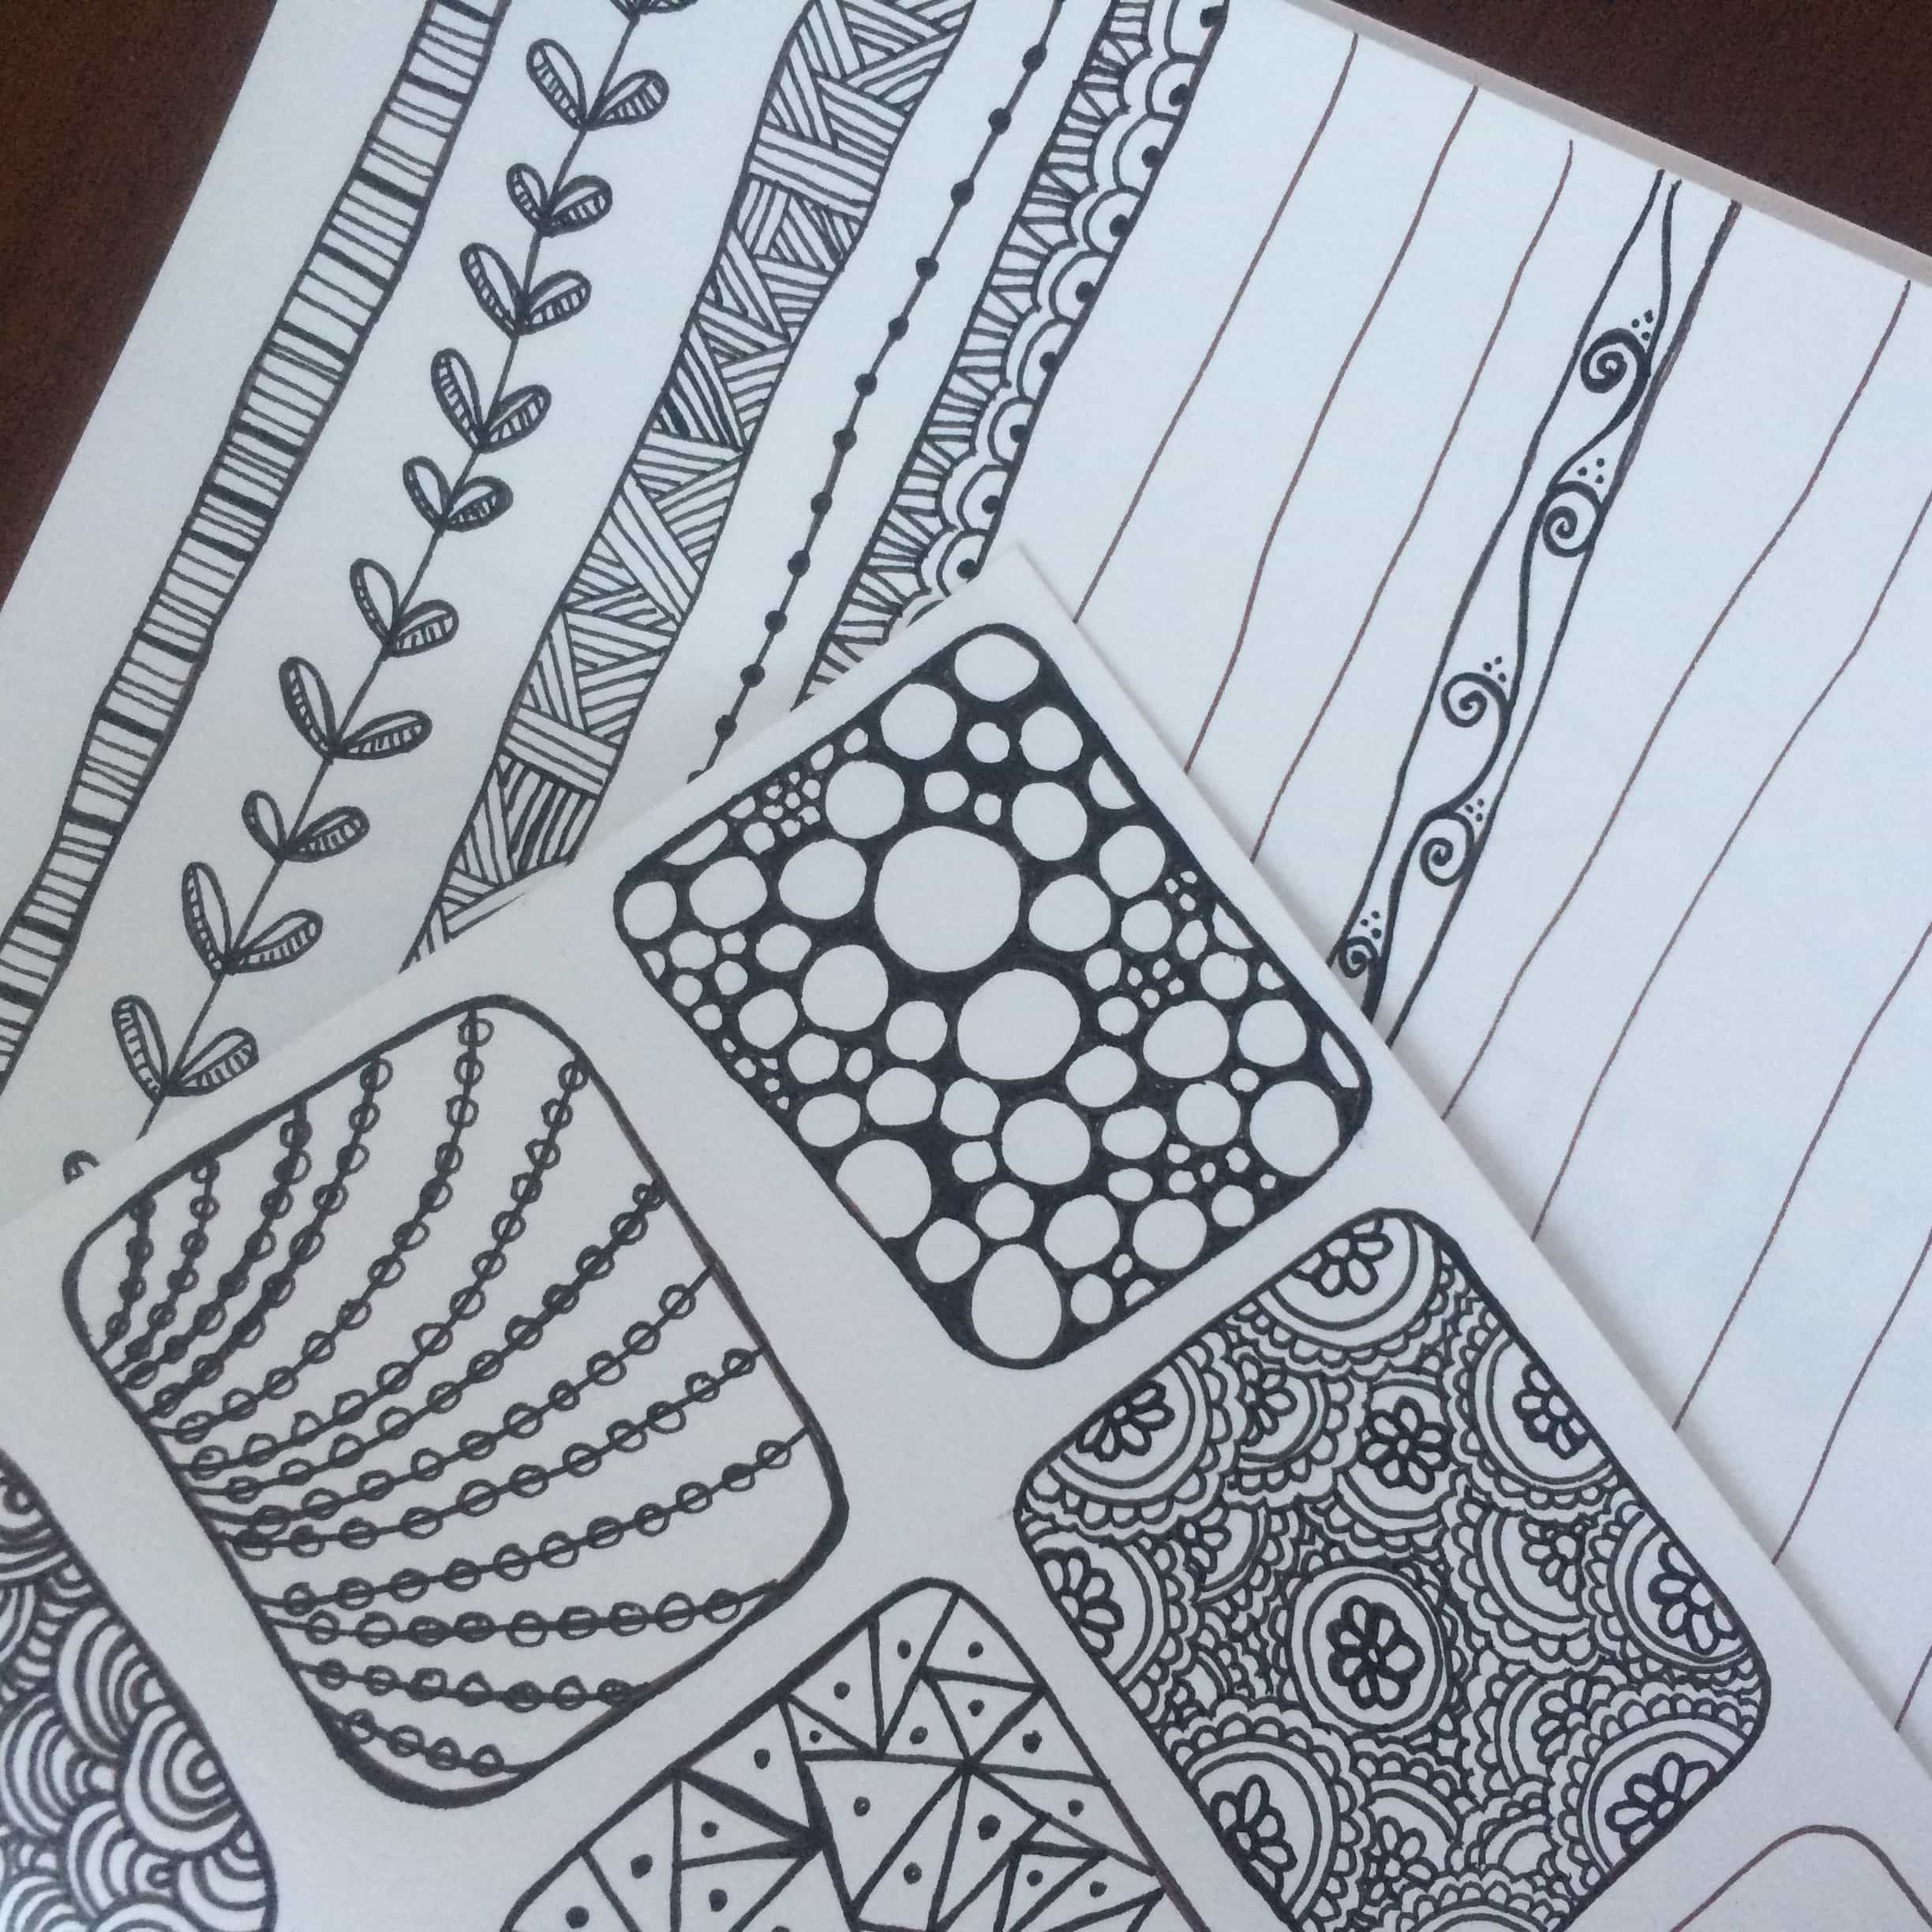 Collect patterns and borders to use in your doodles